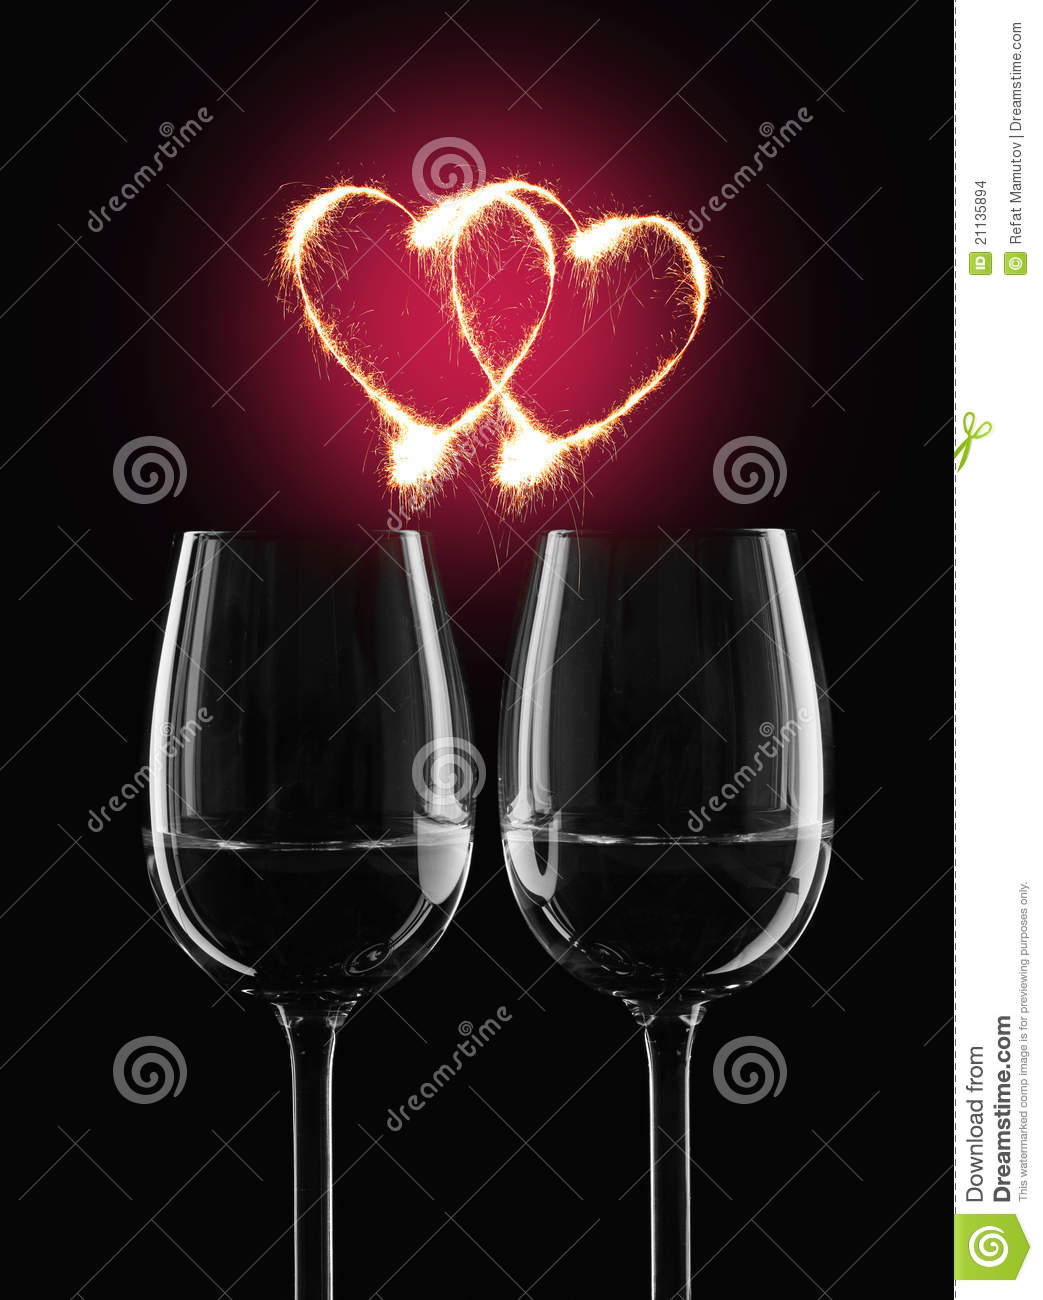 Best Romantic Love Image: Symbol Of Romantic Love Stock Photo. Image Of Romantic